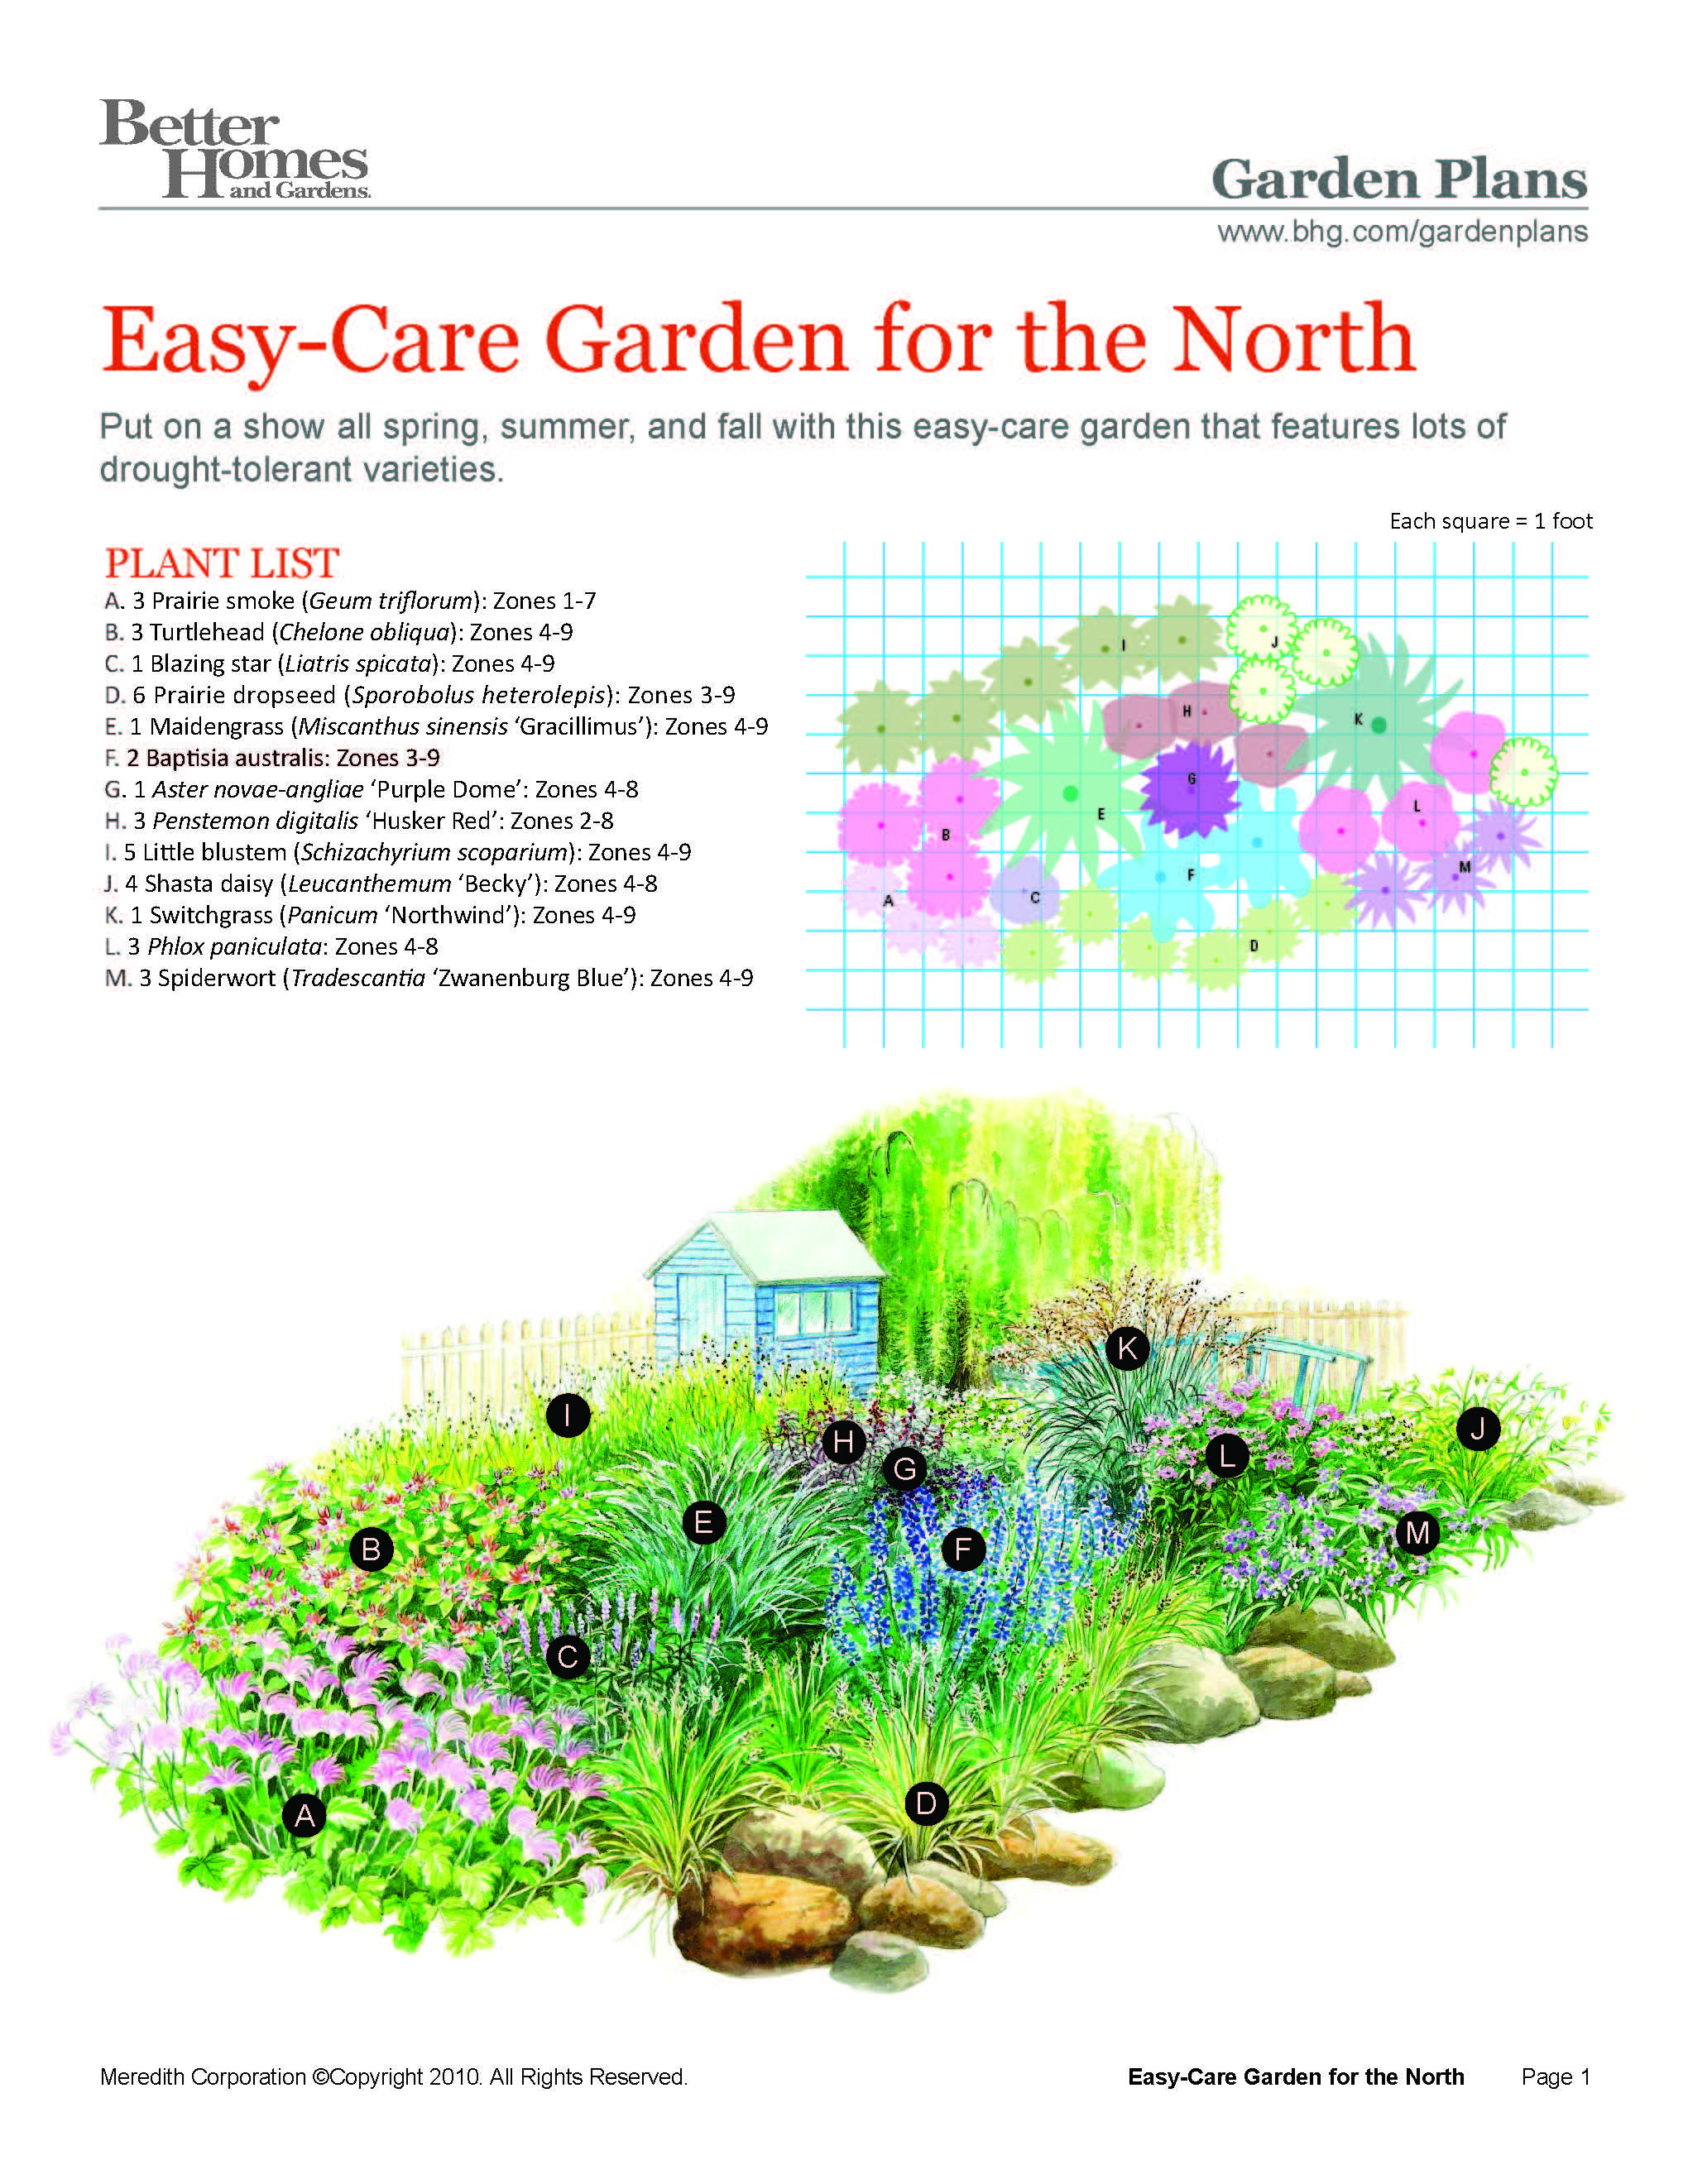 Easy Care Northern Garden Plan Would Be Easy To Substitiute Plants That Do Well In Zone 3 Garden Planning Perennial Garden Plans Flower Garden Plans